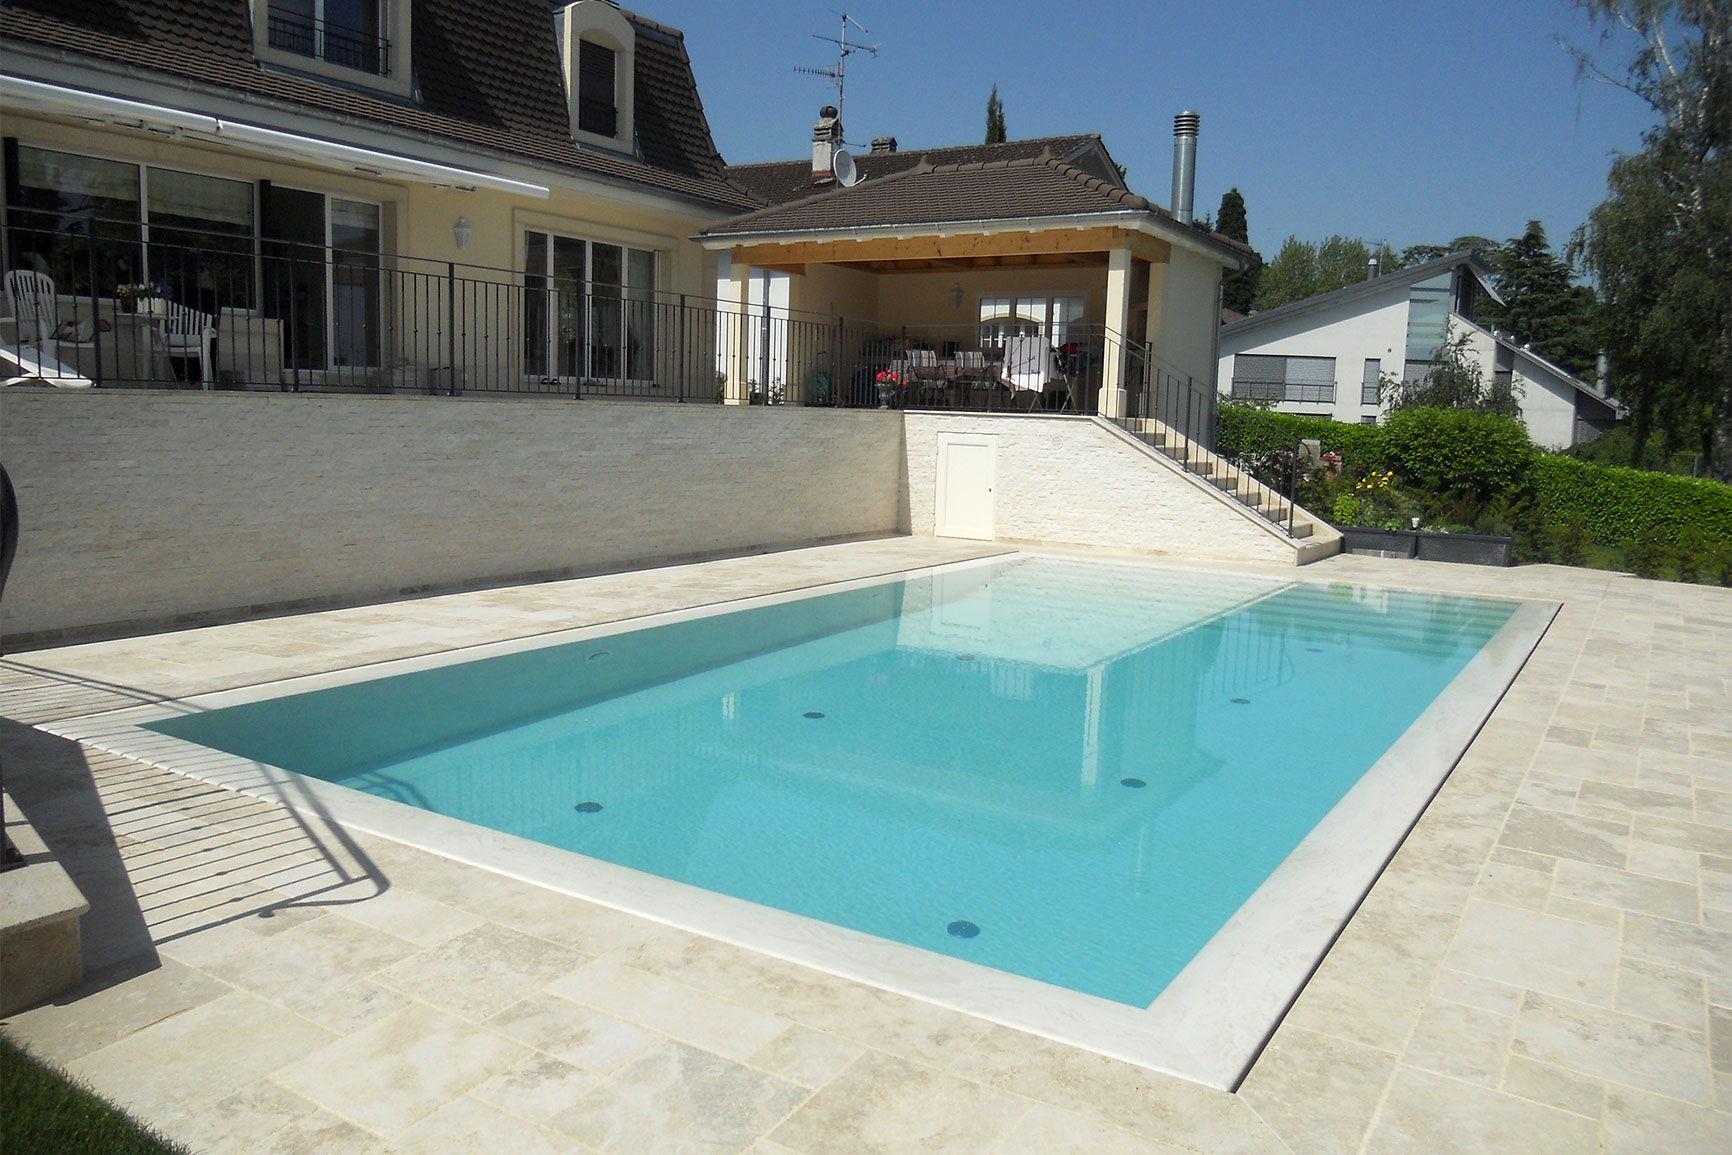 piscine carrelage et d bordement couverture grando